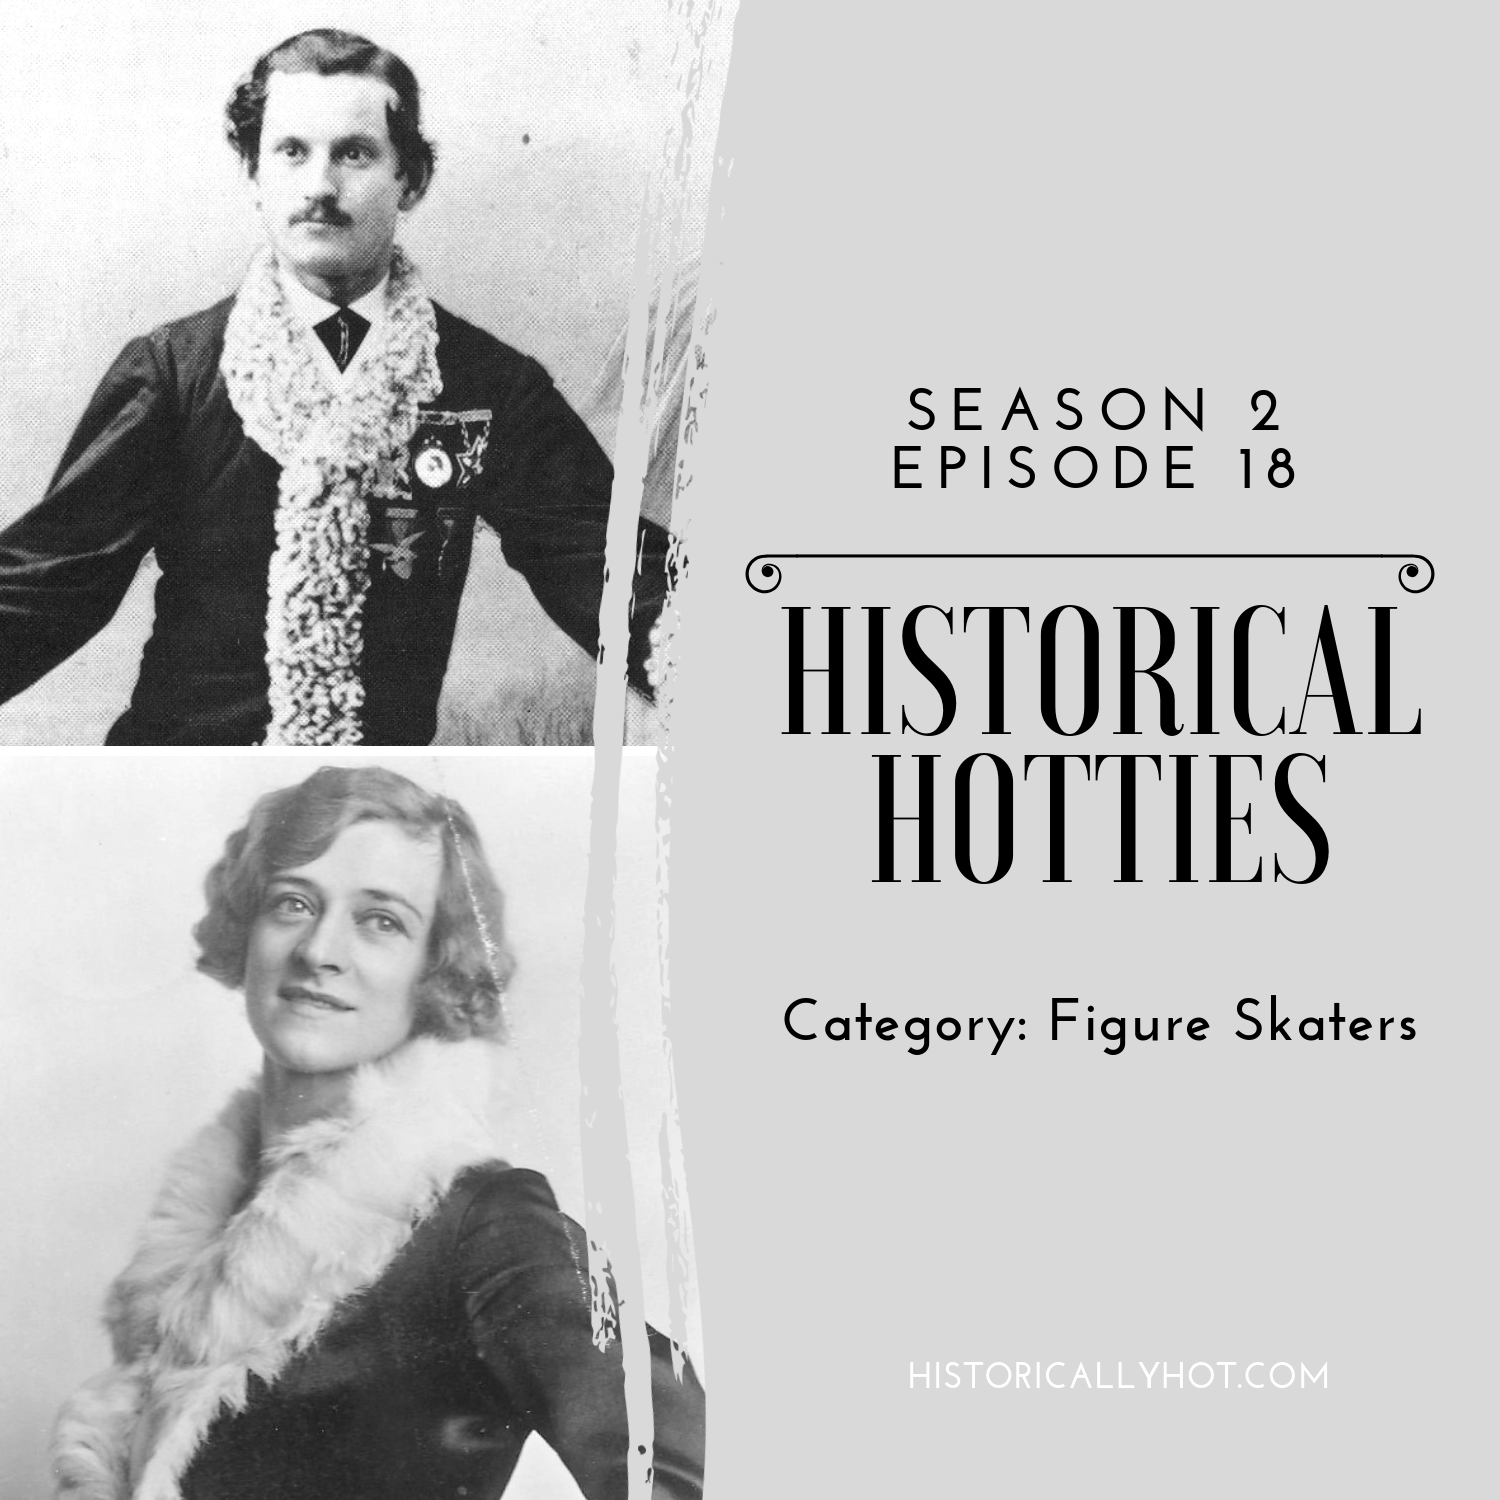 historical hotties figure skaters